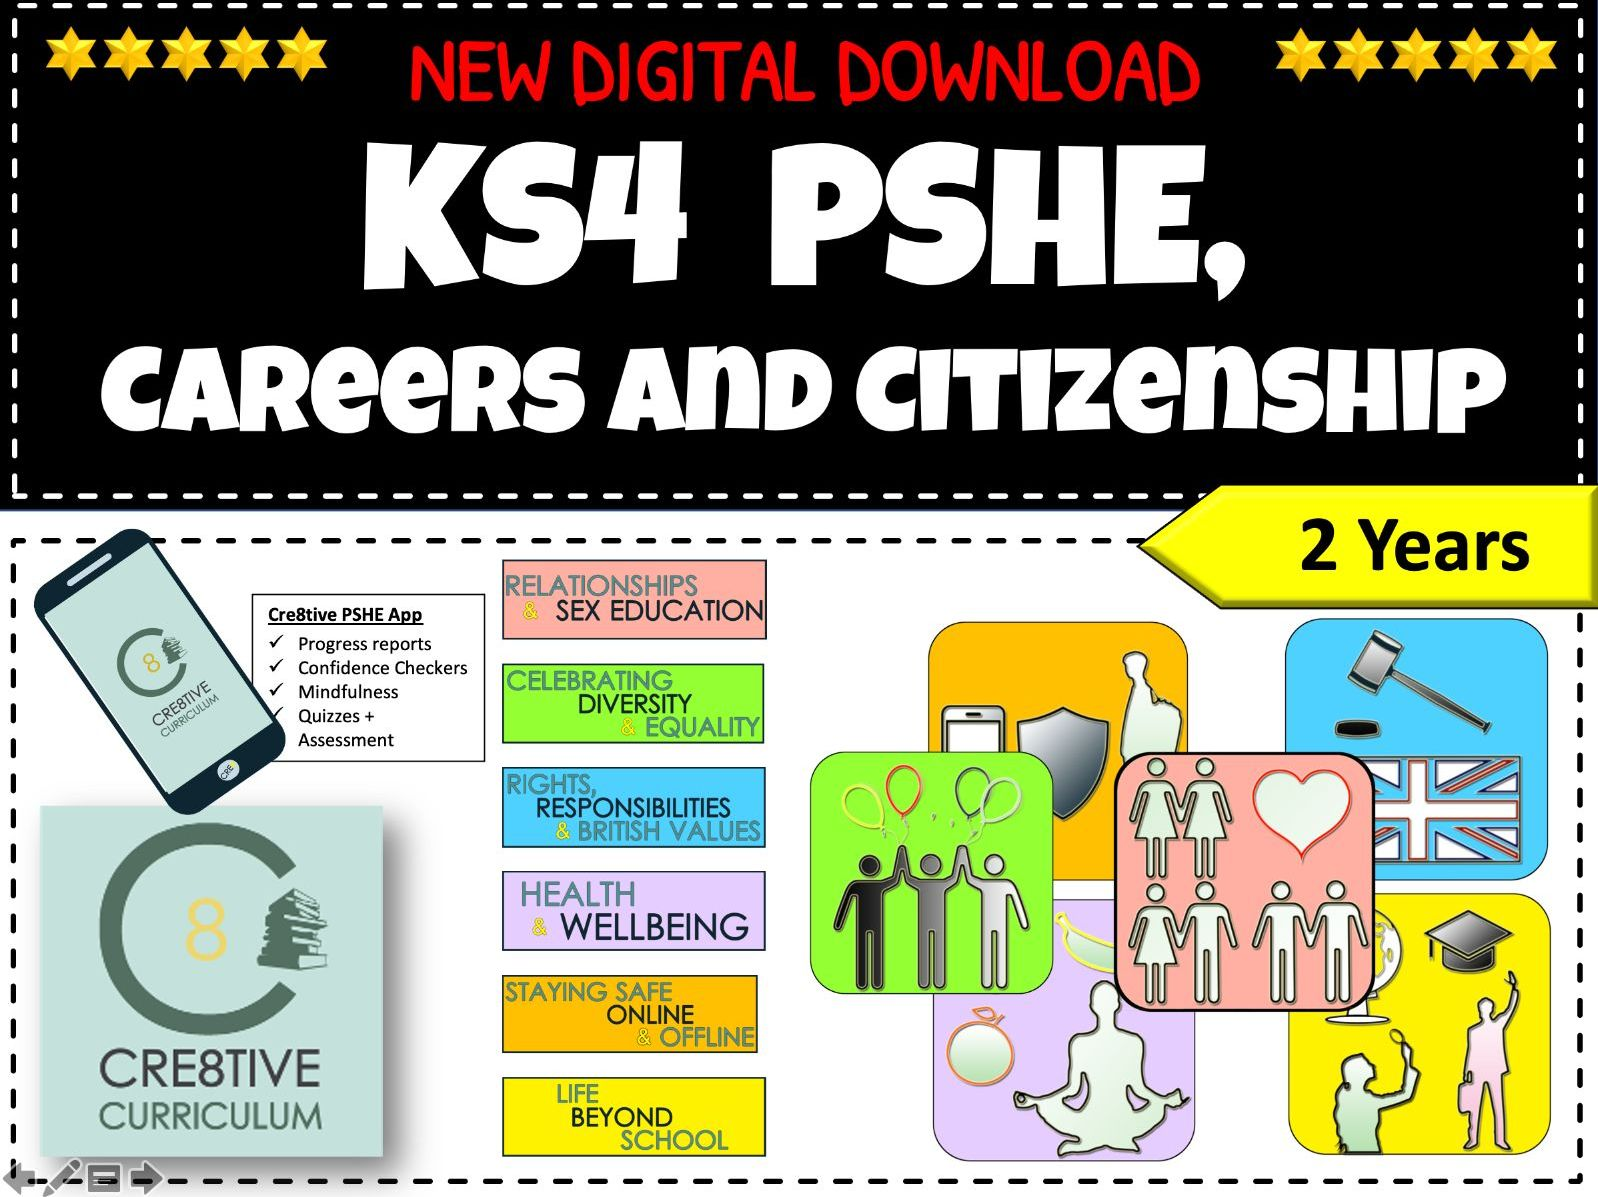 KS4 PSHE Curriculum